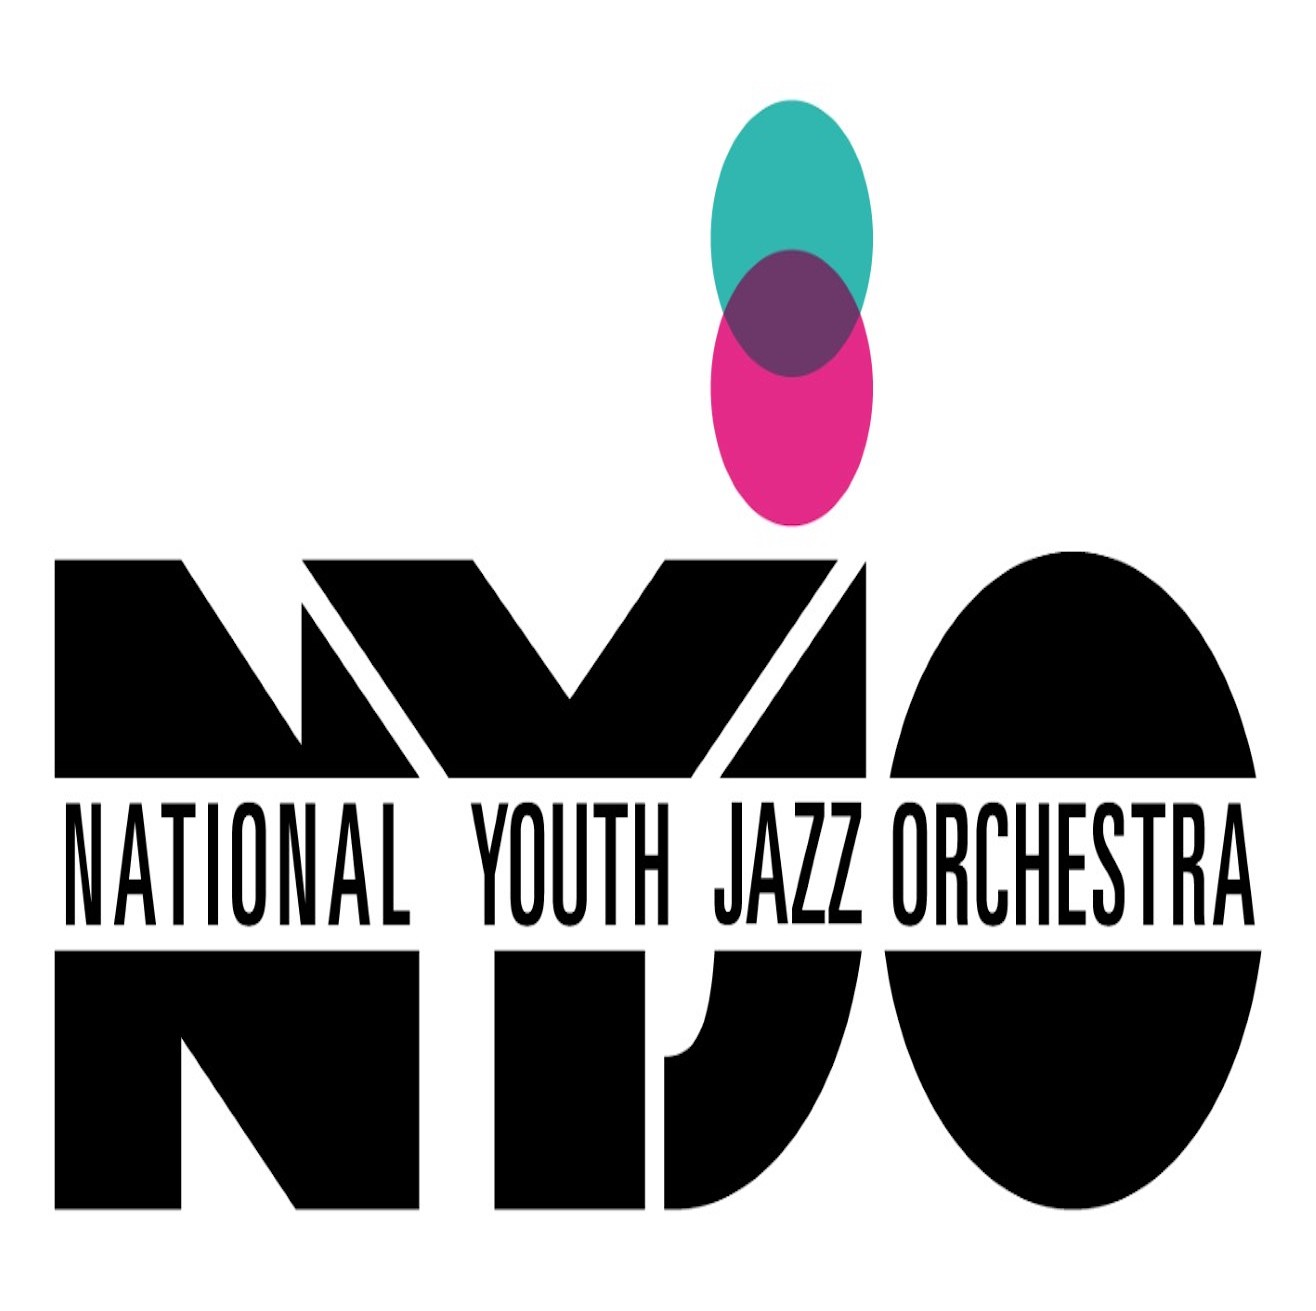 The National Youth Jazz Orchestra banner image